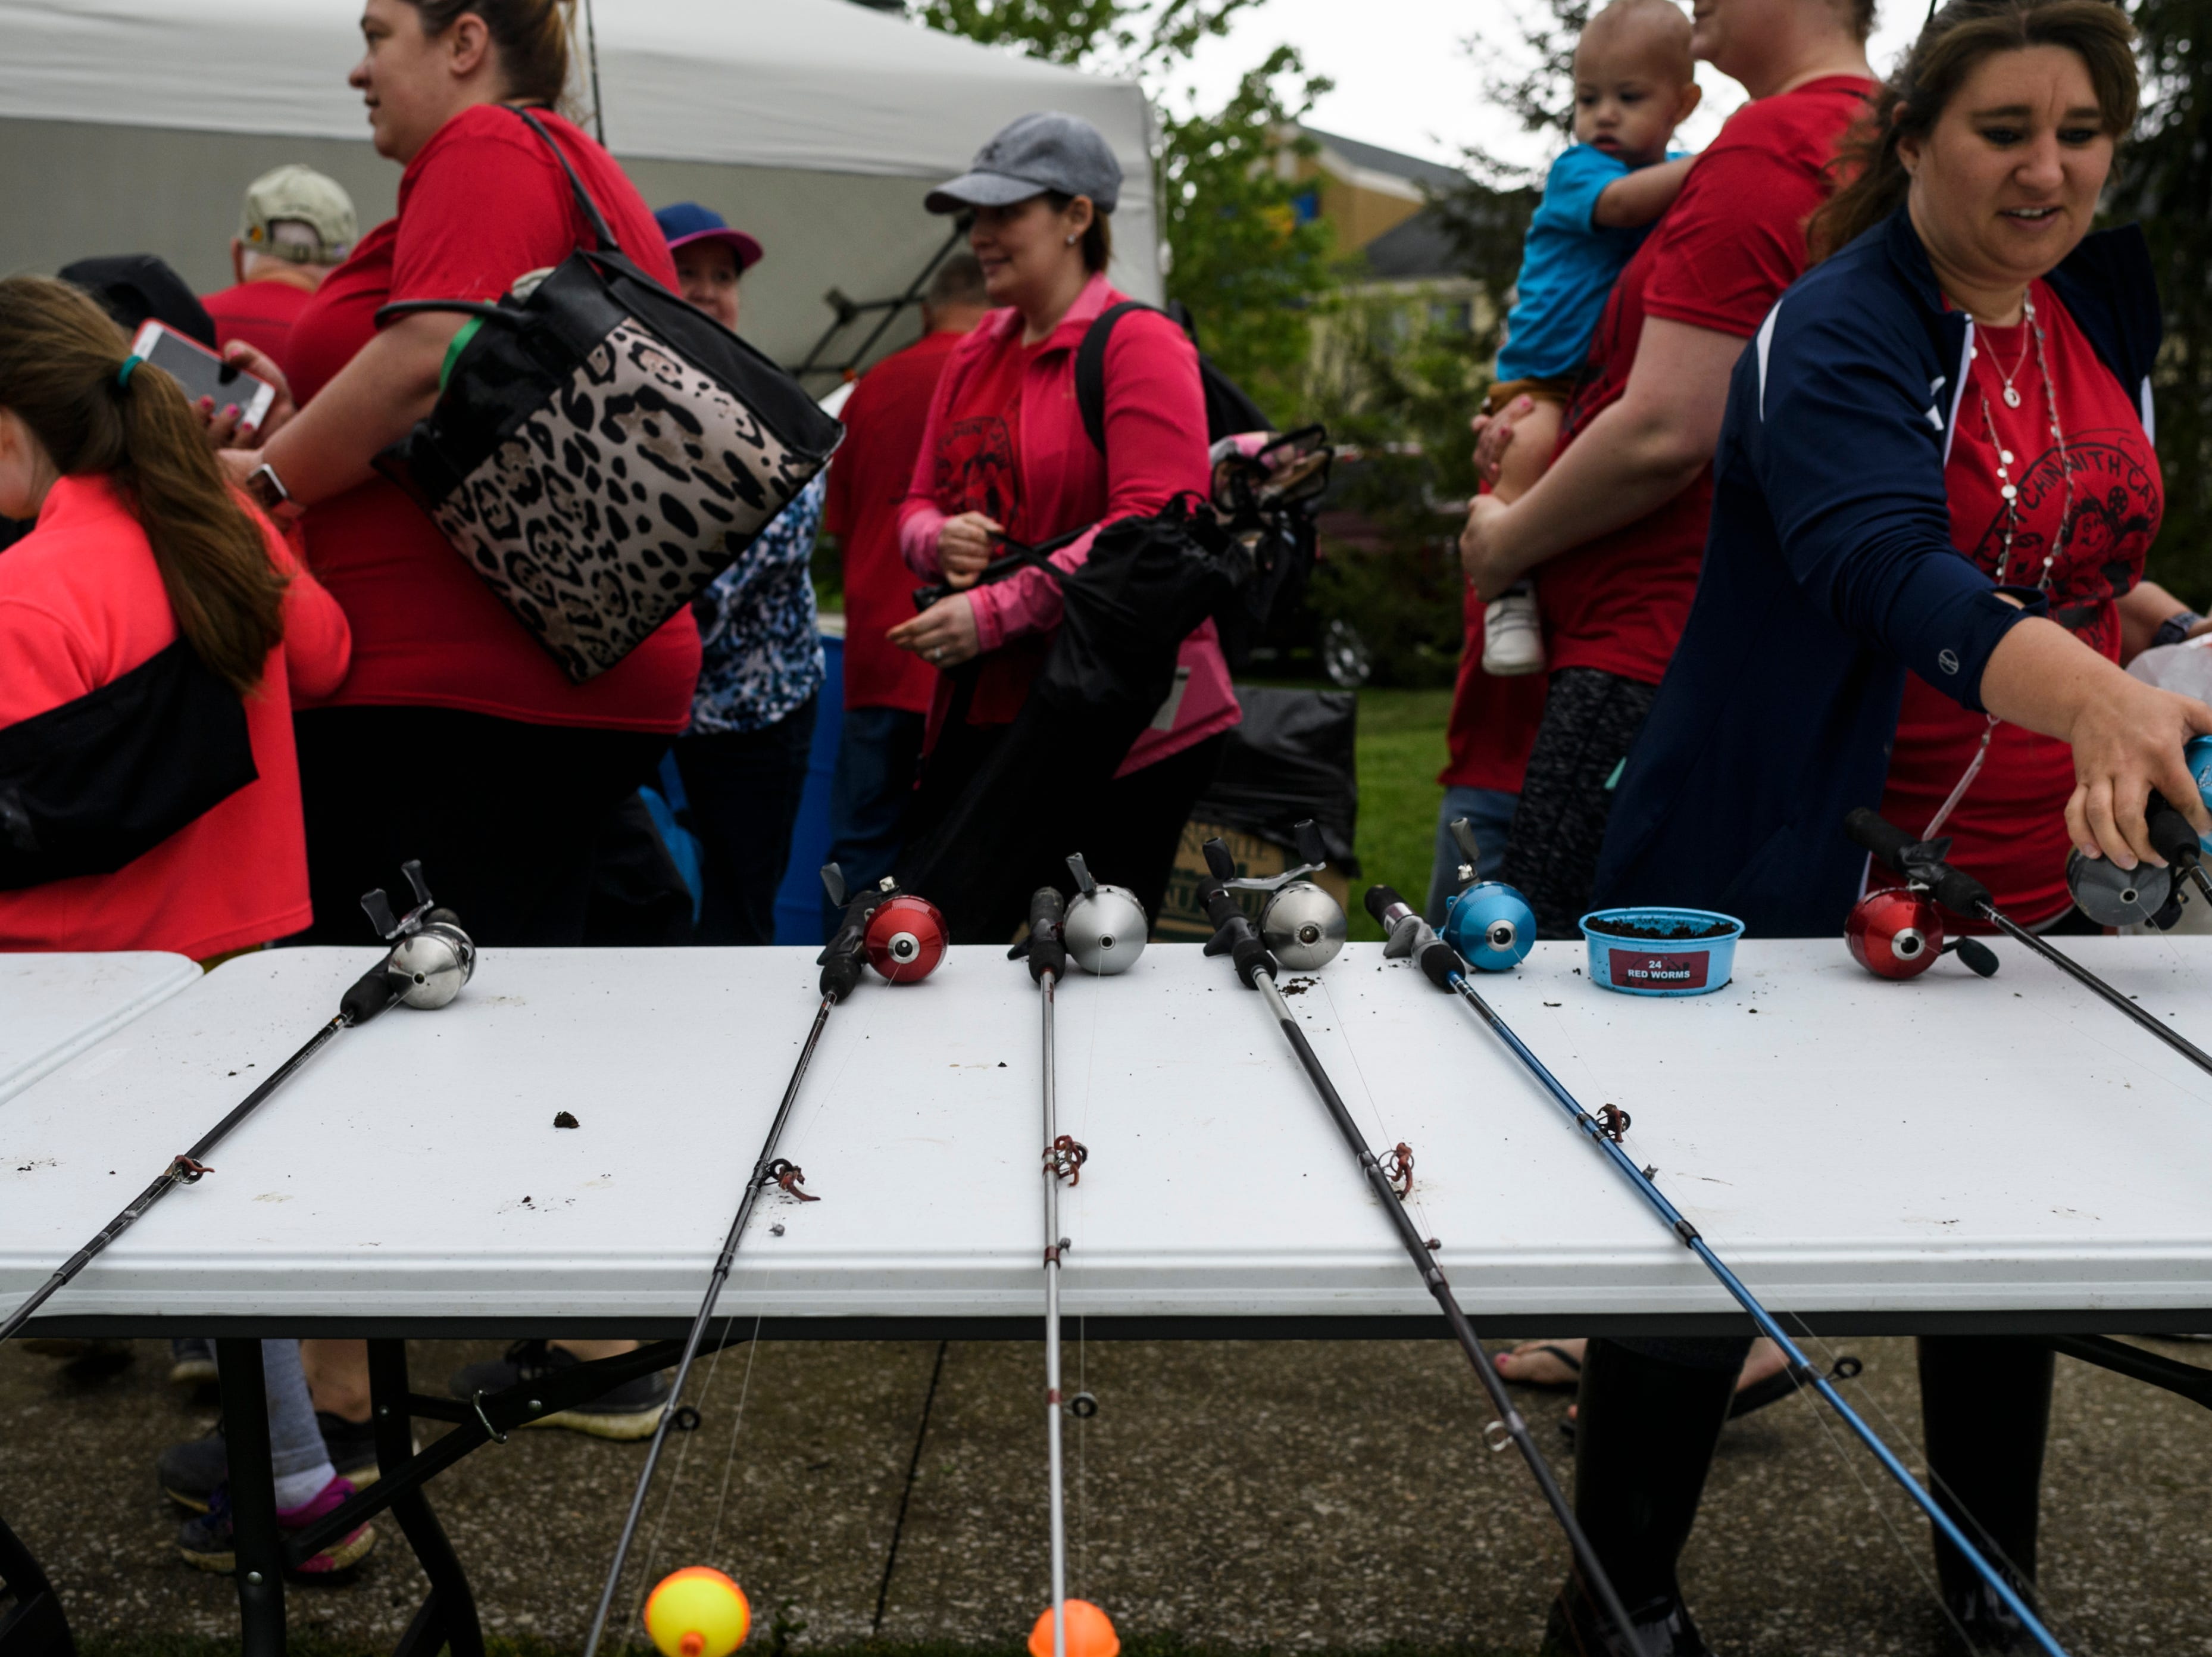 """Fishing poles and worms are provided for students attending the 12th annual """"Catchin' with Capin"""" event at Eagle Lake in Evansville, Ind., Friday, May 3, 2019."""